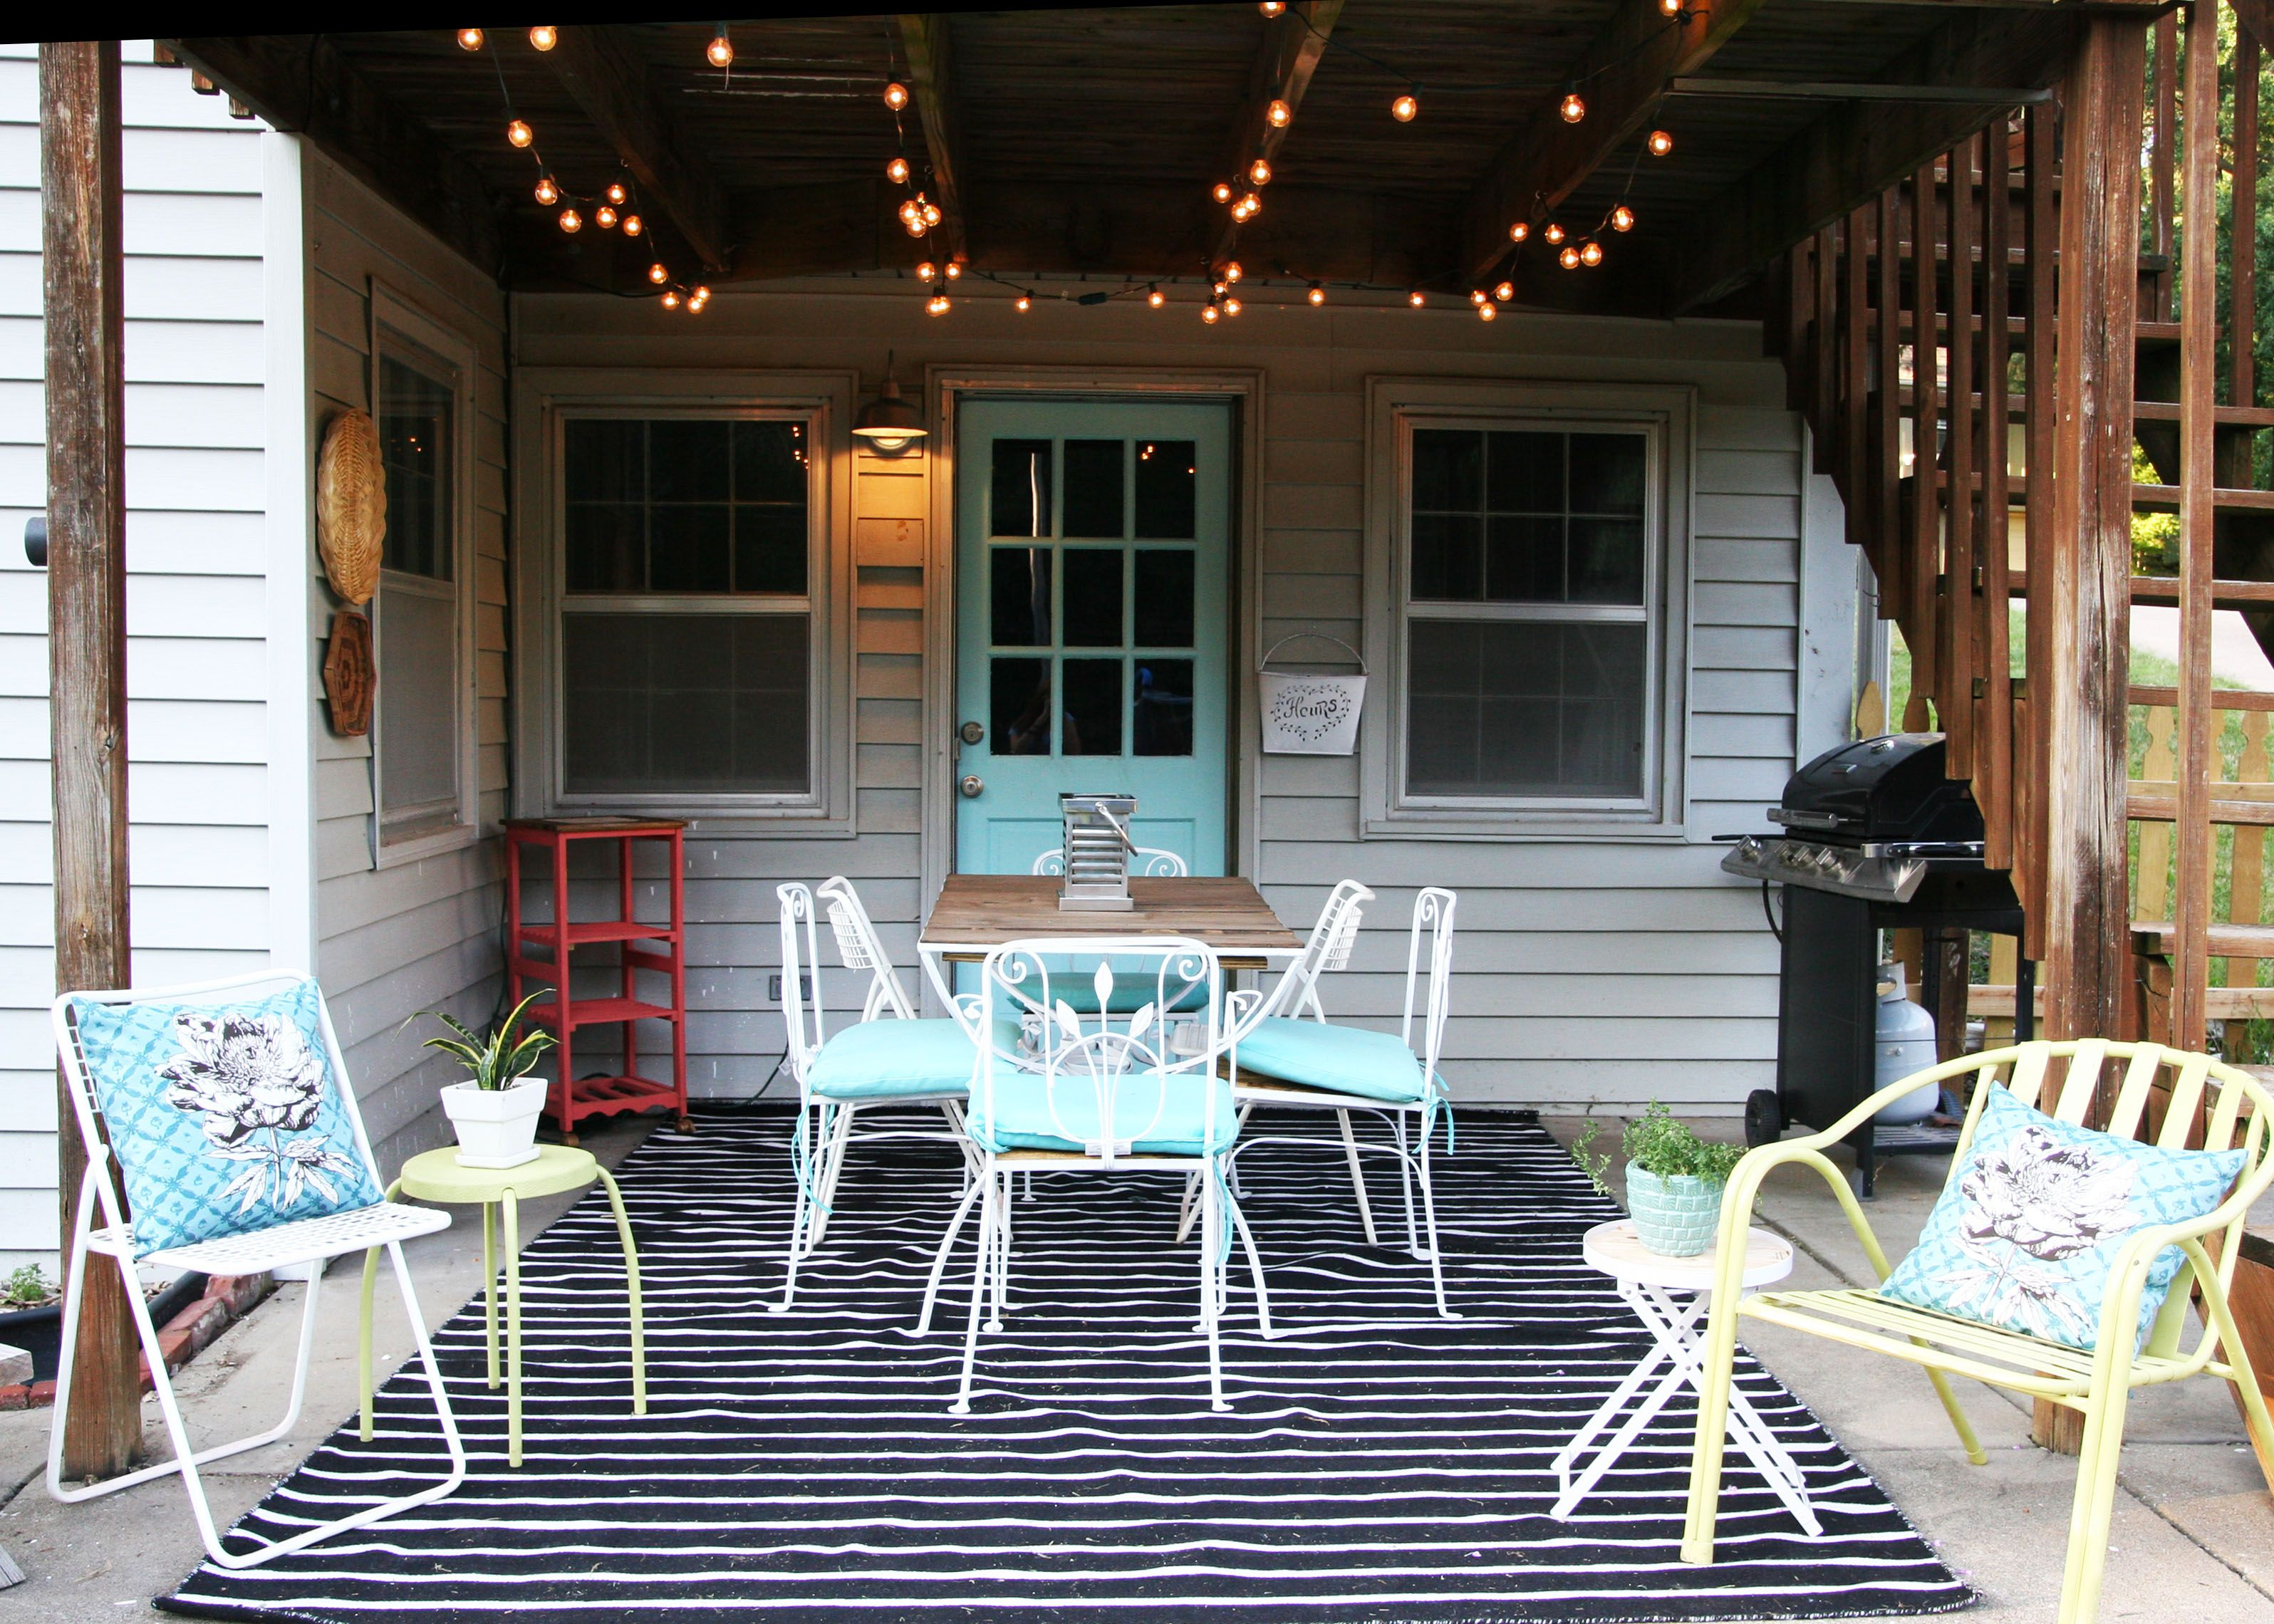 Learn How To Create A Lovely Patio Makeover On A Budget! Lots Of Easy DIYu0027s